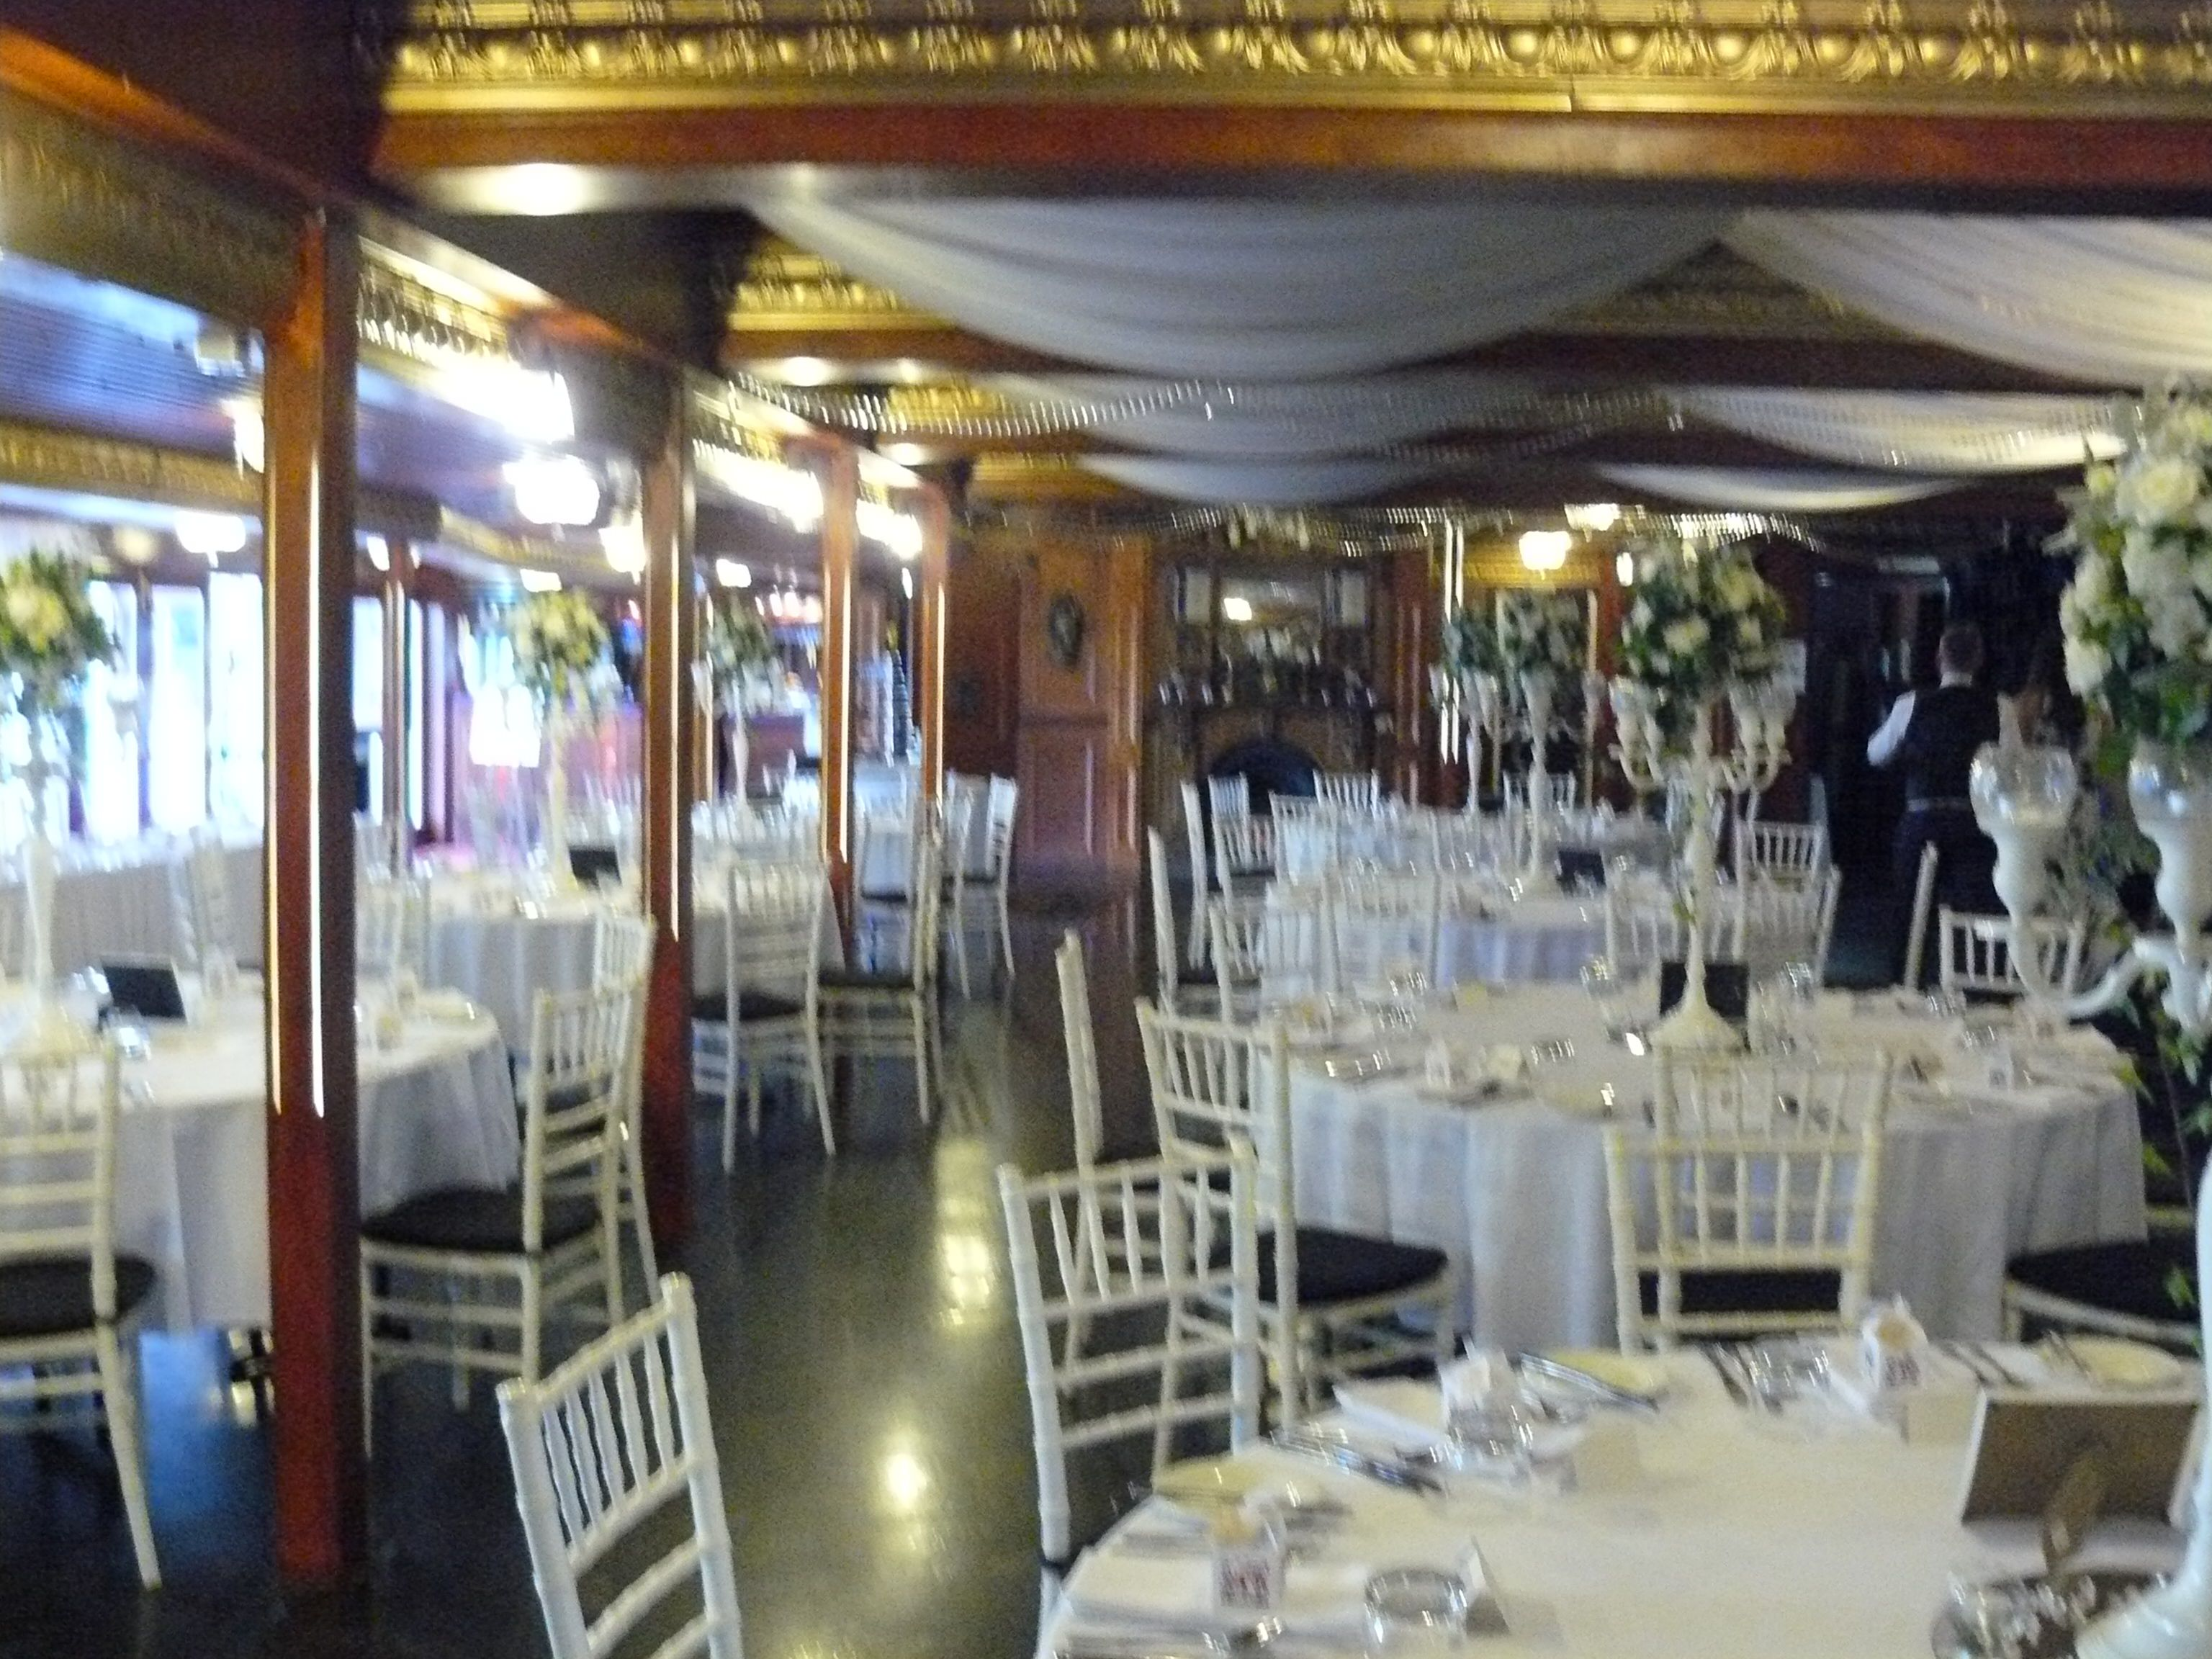 wedding receptions gold coast qld%0A Glengariff Historic Estate ceremony area Brisbane Celebrant Neal Foster The  Marriage Celebrant performs weddings here    Pinterest   Marriage celebrant